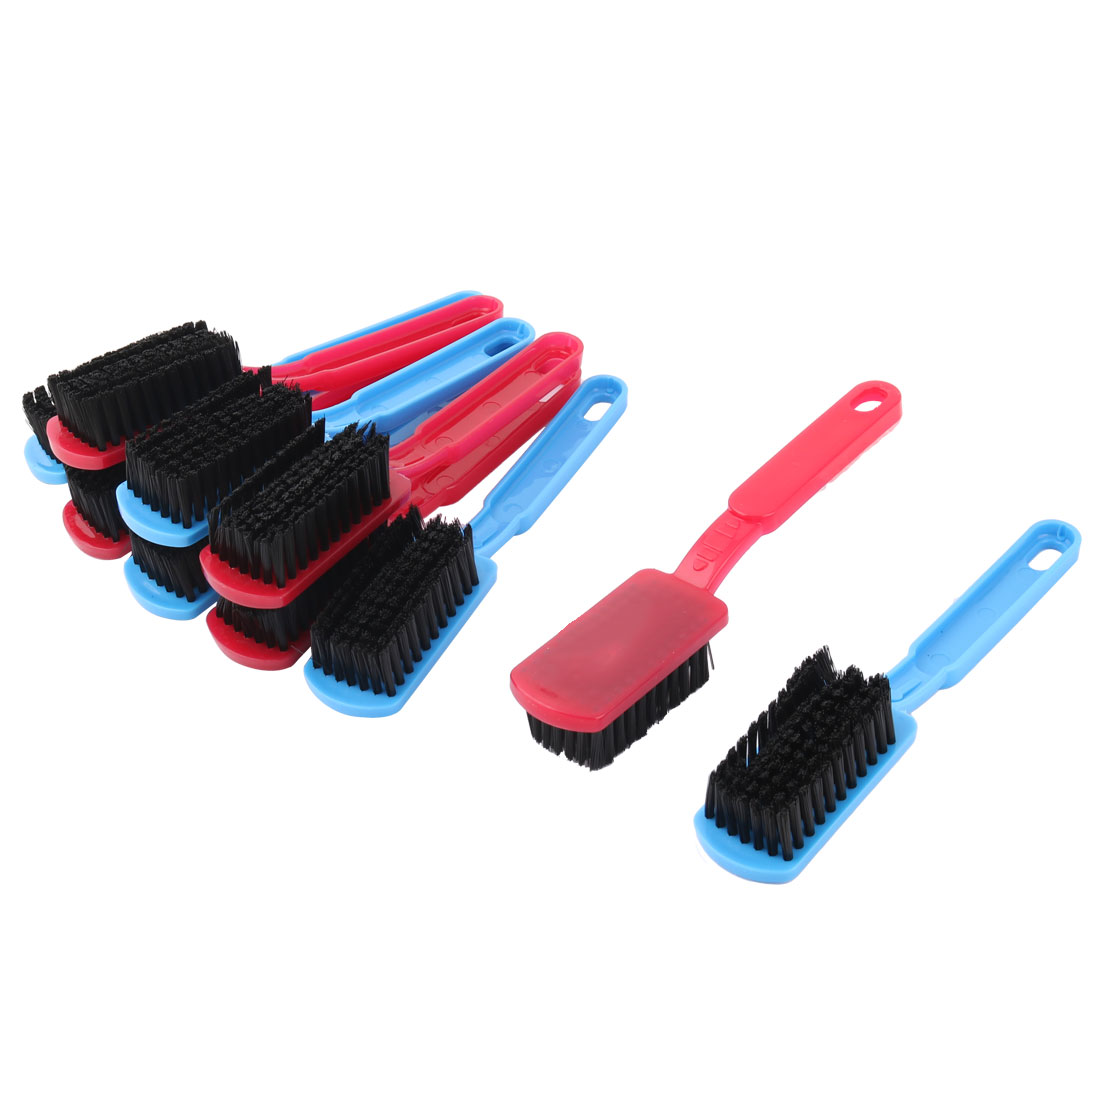 Household Bathroom Shoes Plastic Washing Scrubbing Cleaning Brush Tool 10pcs